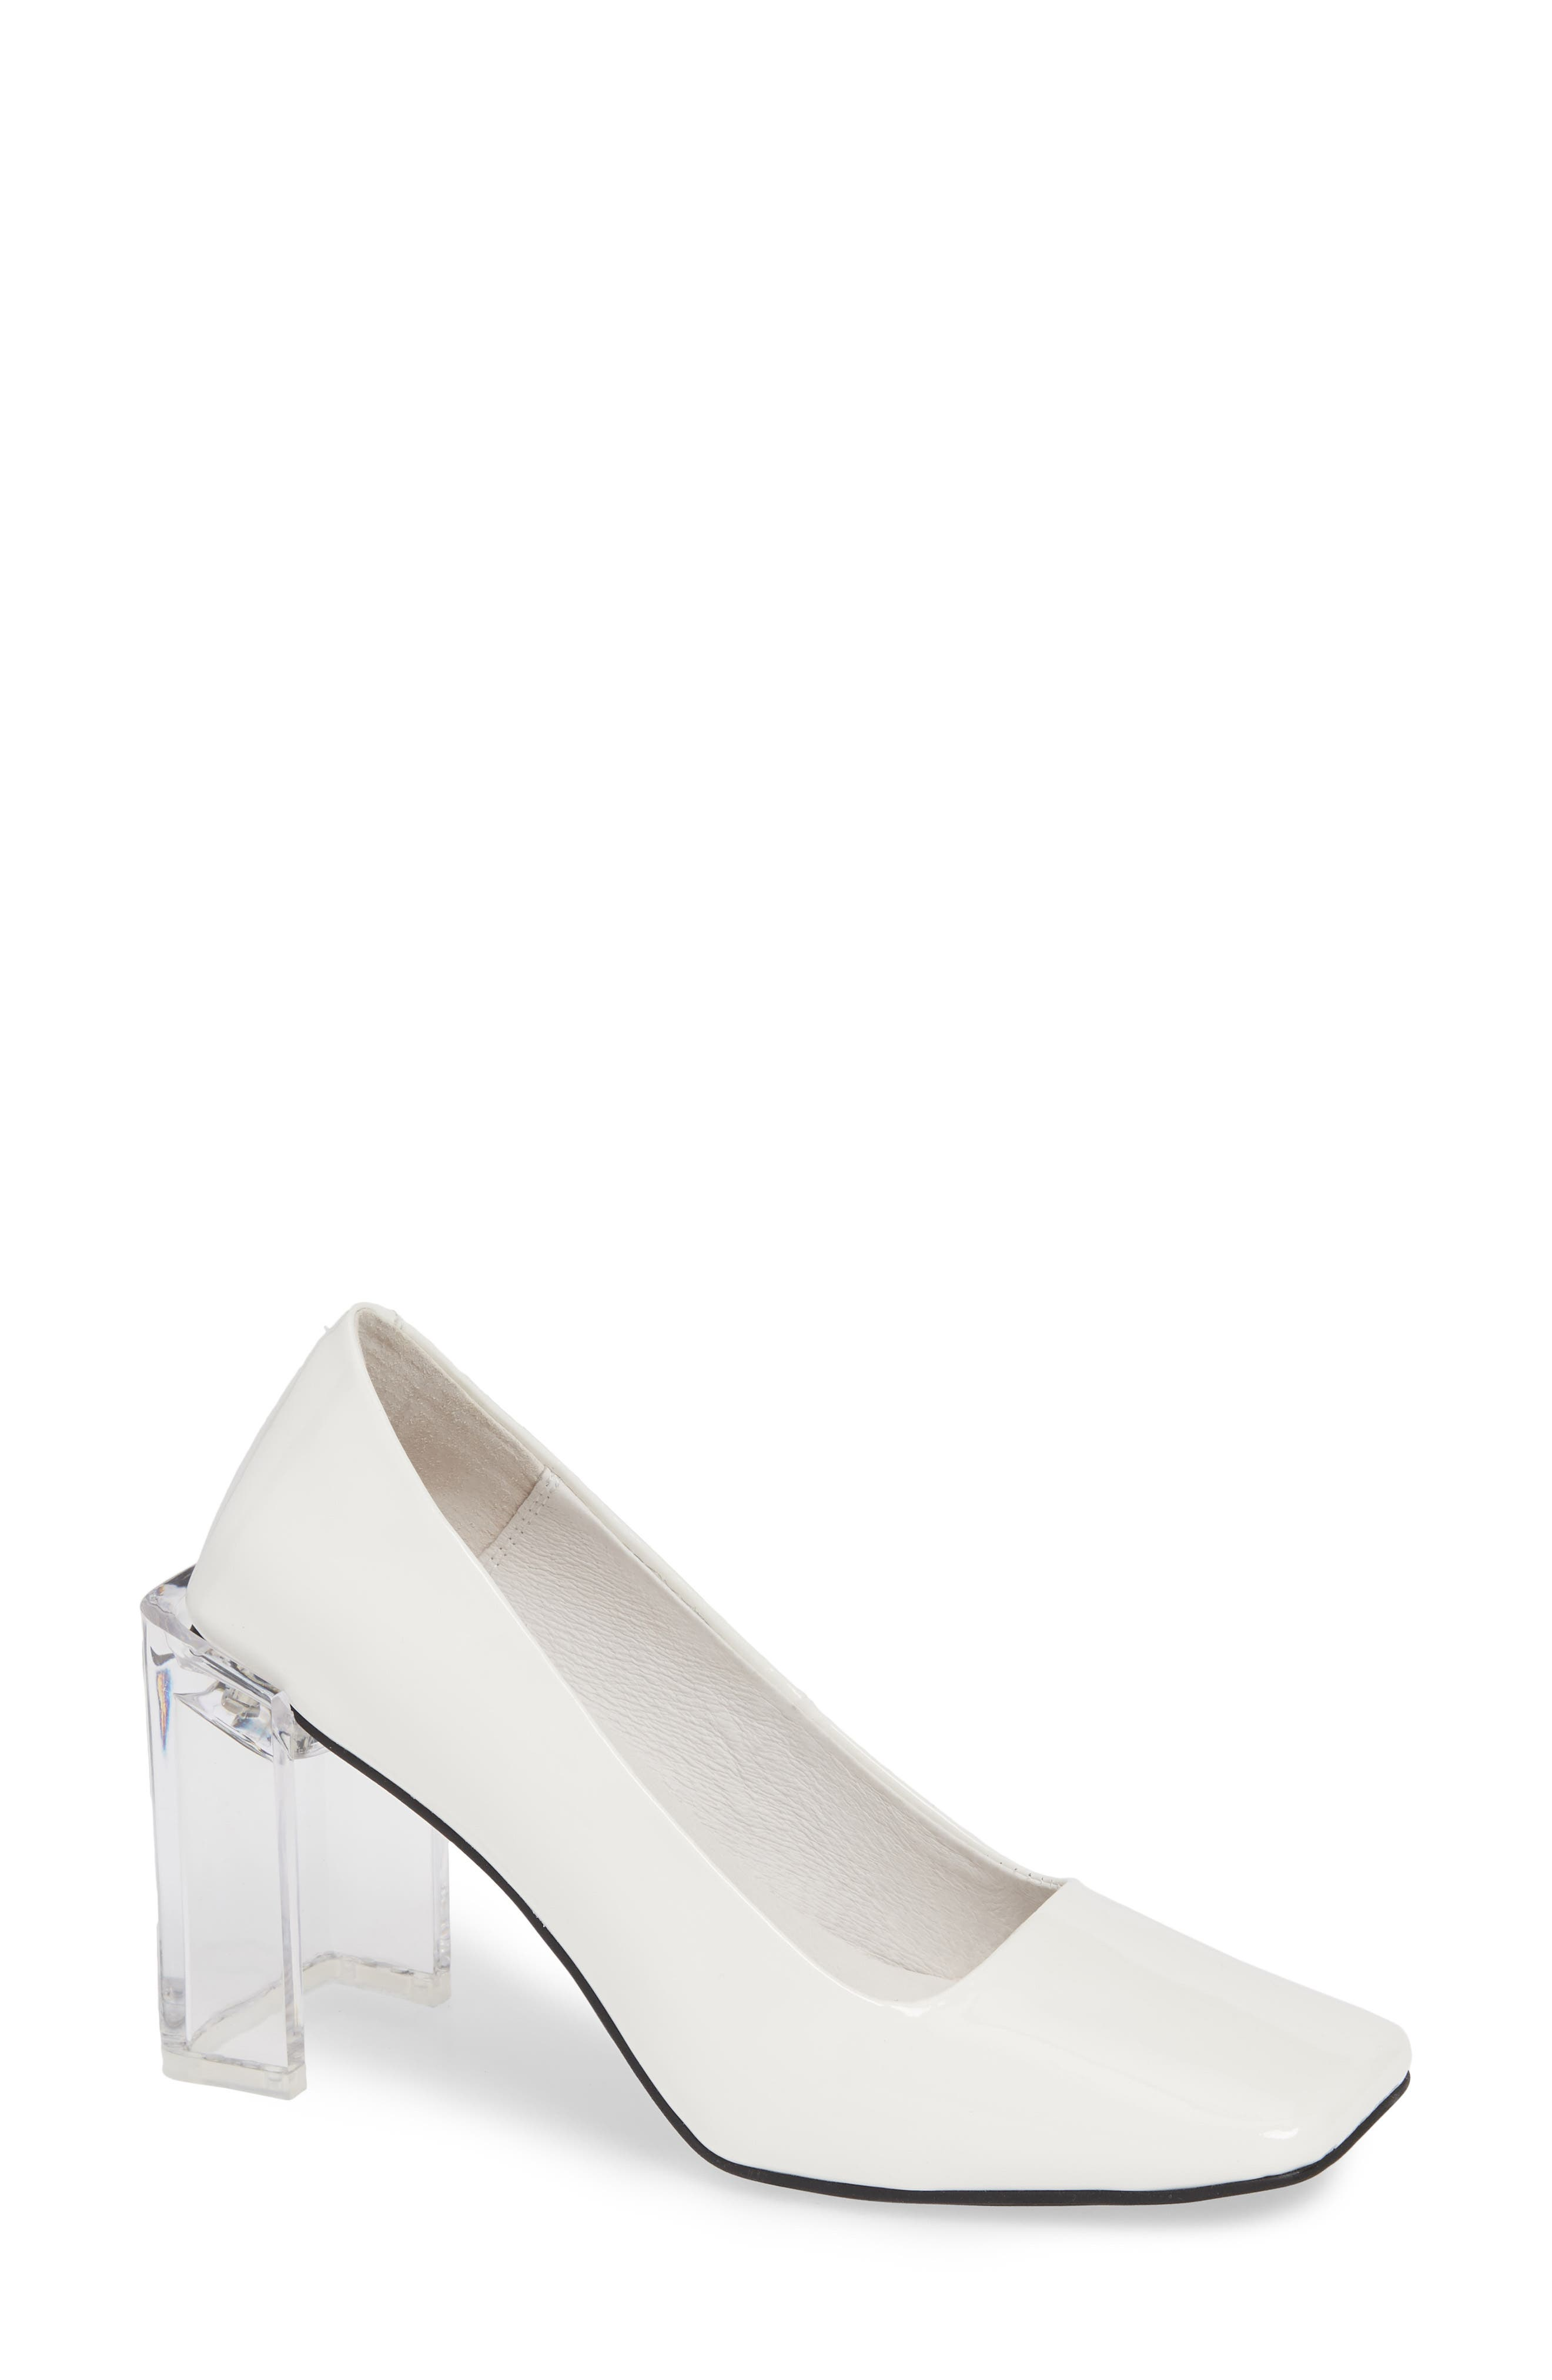 JEFFREY CAMPBELL Graff Clear Heel Pump, Main, color, WHITE PATENT LEATHER